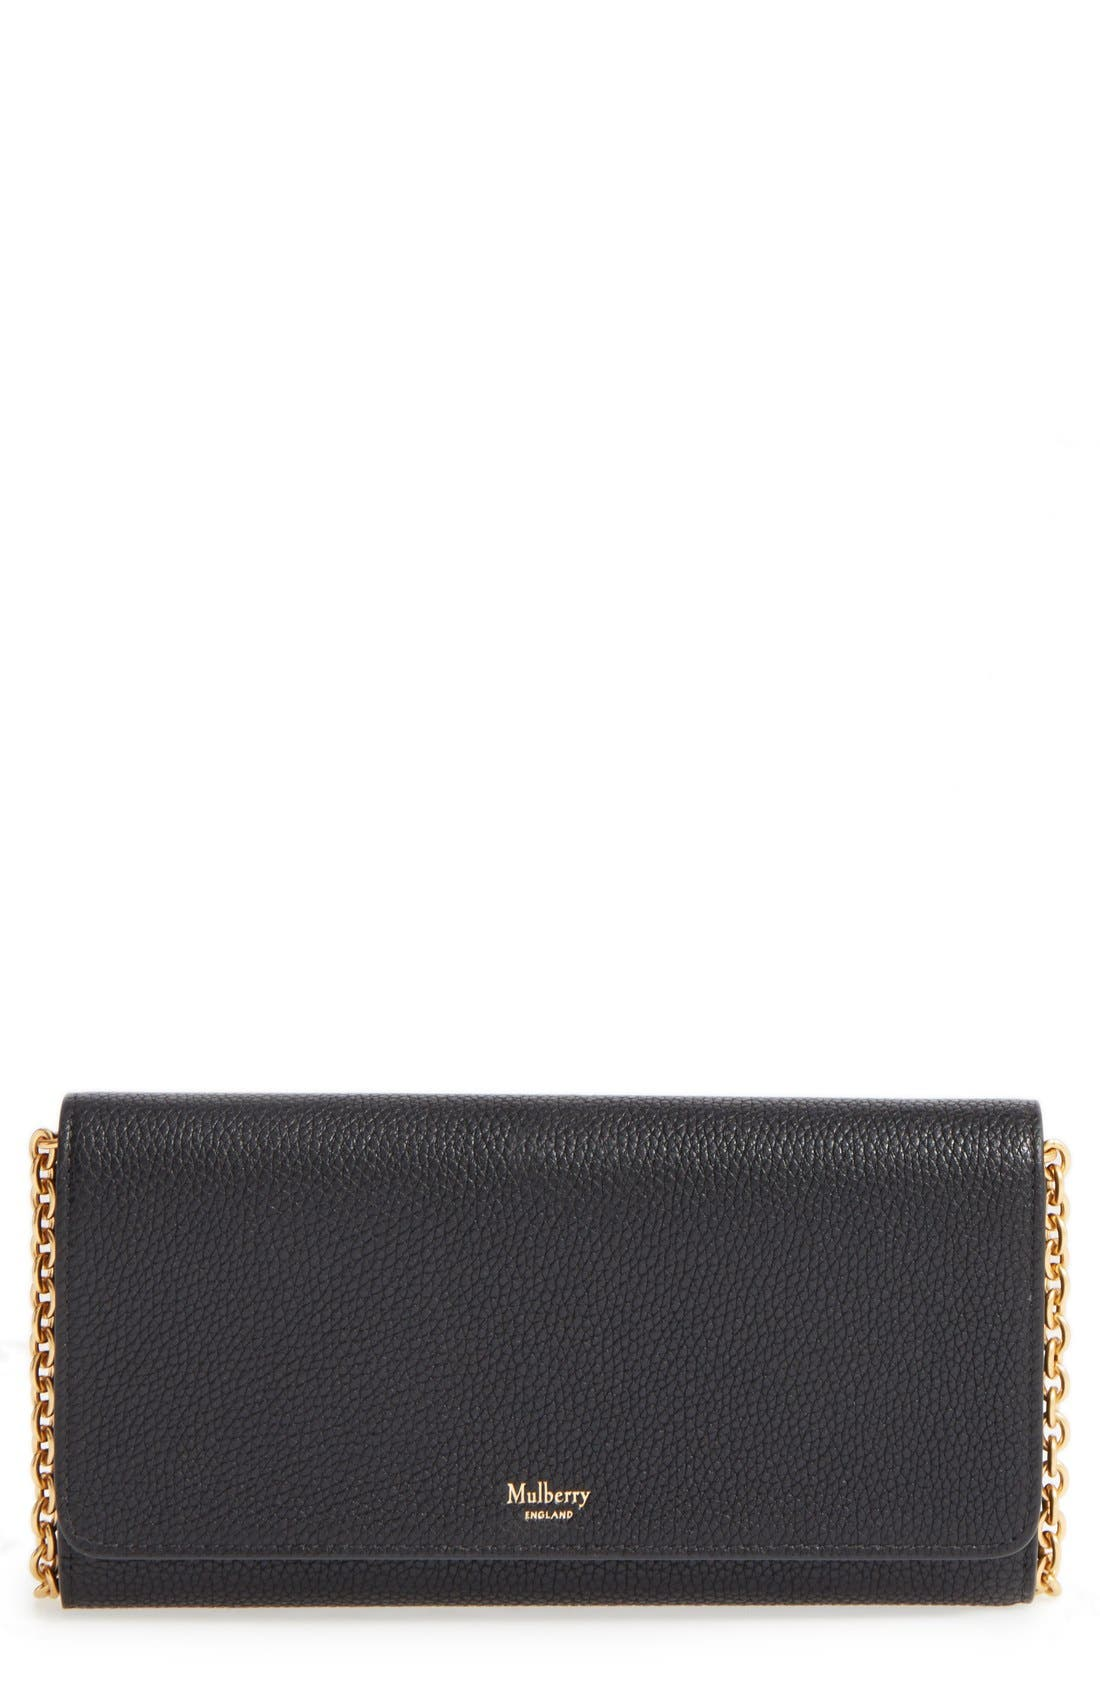 'Continental - Classic' Convertible Leather Clutch,                         Main,                         color, Black